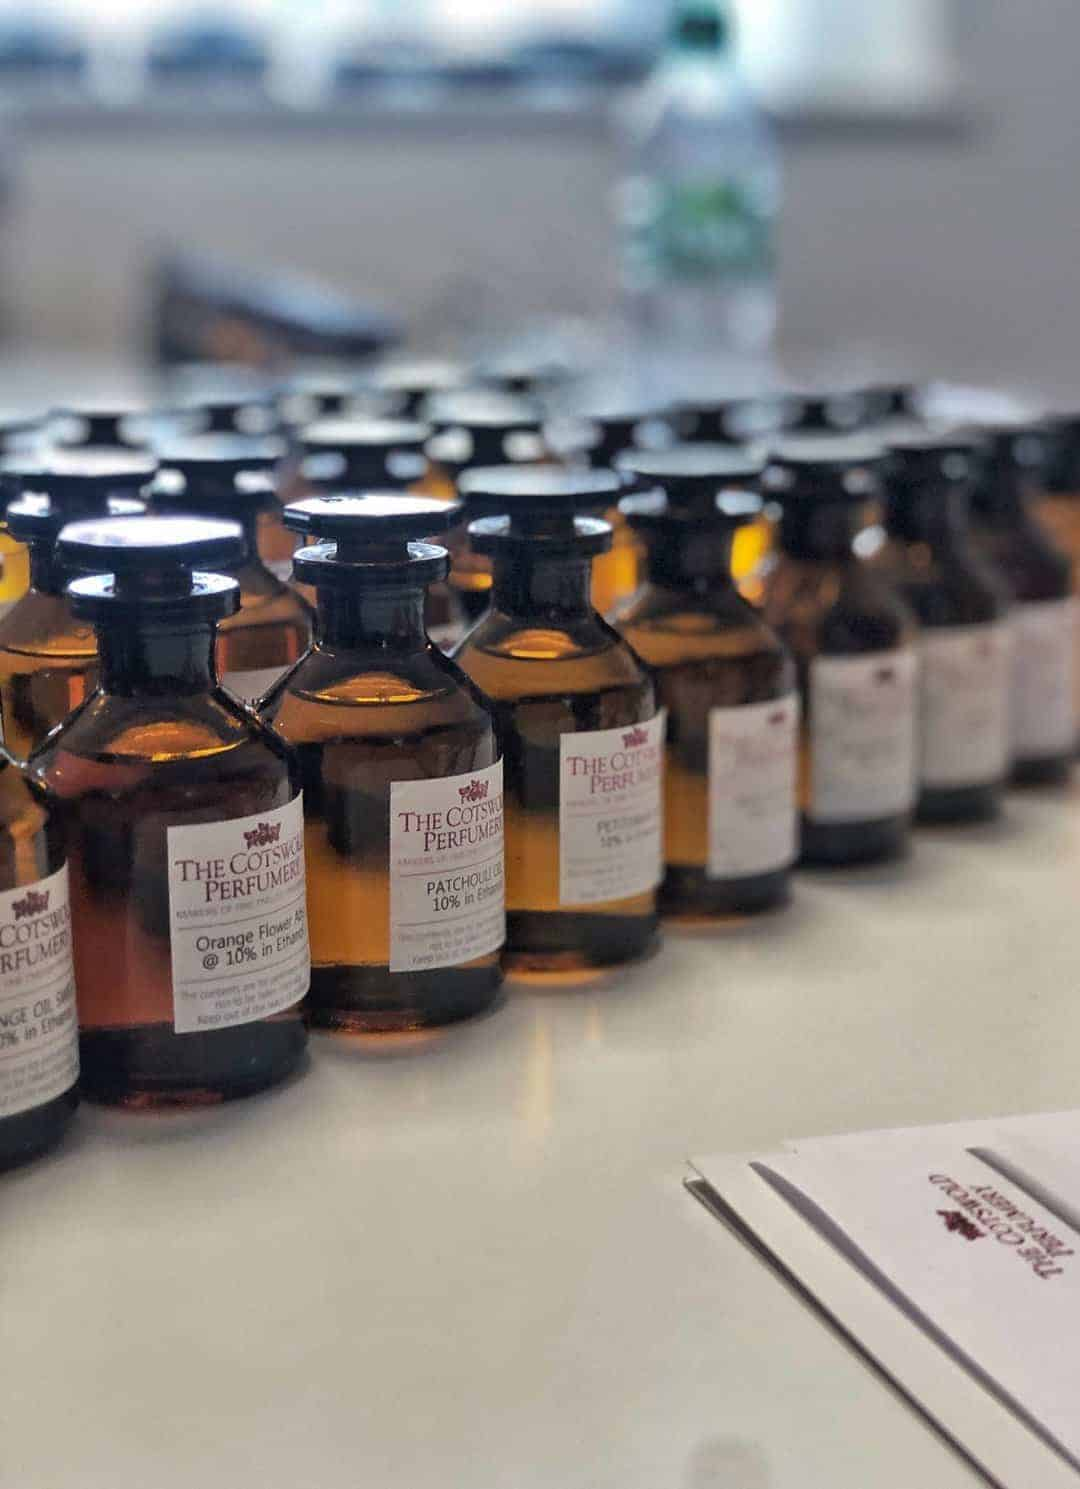 love making my own natural perfume using essential oils - click through to learn the basics with The Cotswold Perfumery as well as my own favourite blend of fragrant oils as well as simple DIY step by steps